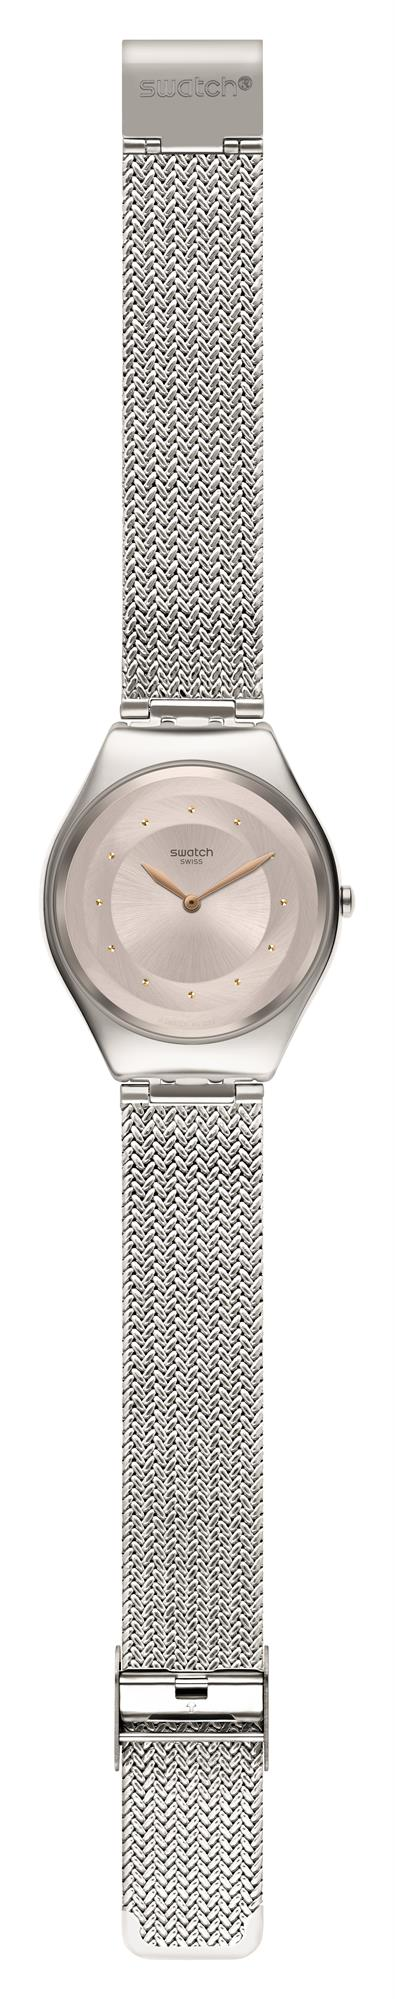 Swatch Skin Irony SkinSand Milanese Mesh Bracelet Ladies Watch SYXS117M 38mmThisSwatch Skin Irony SkinSand Milanese Mesh Bracelet Ladies Watch SYXS117M 38mm is a superb addition to the skin irony collection. The dial has a metallic pink colour to it. Around the edge of the dial are golden sparkles used as indexes with hands powered by a quartz movement. Just below the 12 o'clock index is the classic Swatch logo. Surrounding the dial is a polished silver stainless steel case. To equip this watch a beautiful silver stainless teell mesh milanese bracelet is fastened using a standard buckle.This watch has a water resistance of 30 metres, making it suitable for light splashes.Key Features:Silver Stainless Steel Mesh Milanese BraceletStandard BucklePink Dial30m Water ResistantQuartz MovementSilver Stainless Steel CaseThe Brand: SwatchSwatch watches are globally-renowned for their trademark combination of quality Swiss watchmaking, pioneering use of plastic cases and straps, and eye-catching designs. There is a Swatch watch to suit every age, taste and lifestyle, with this variety and sense of difference ensuring that Swatch watches remain some of the most popular and sought after currently manufactured.